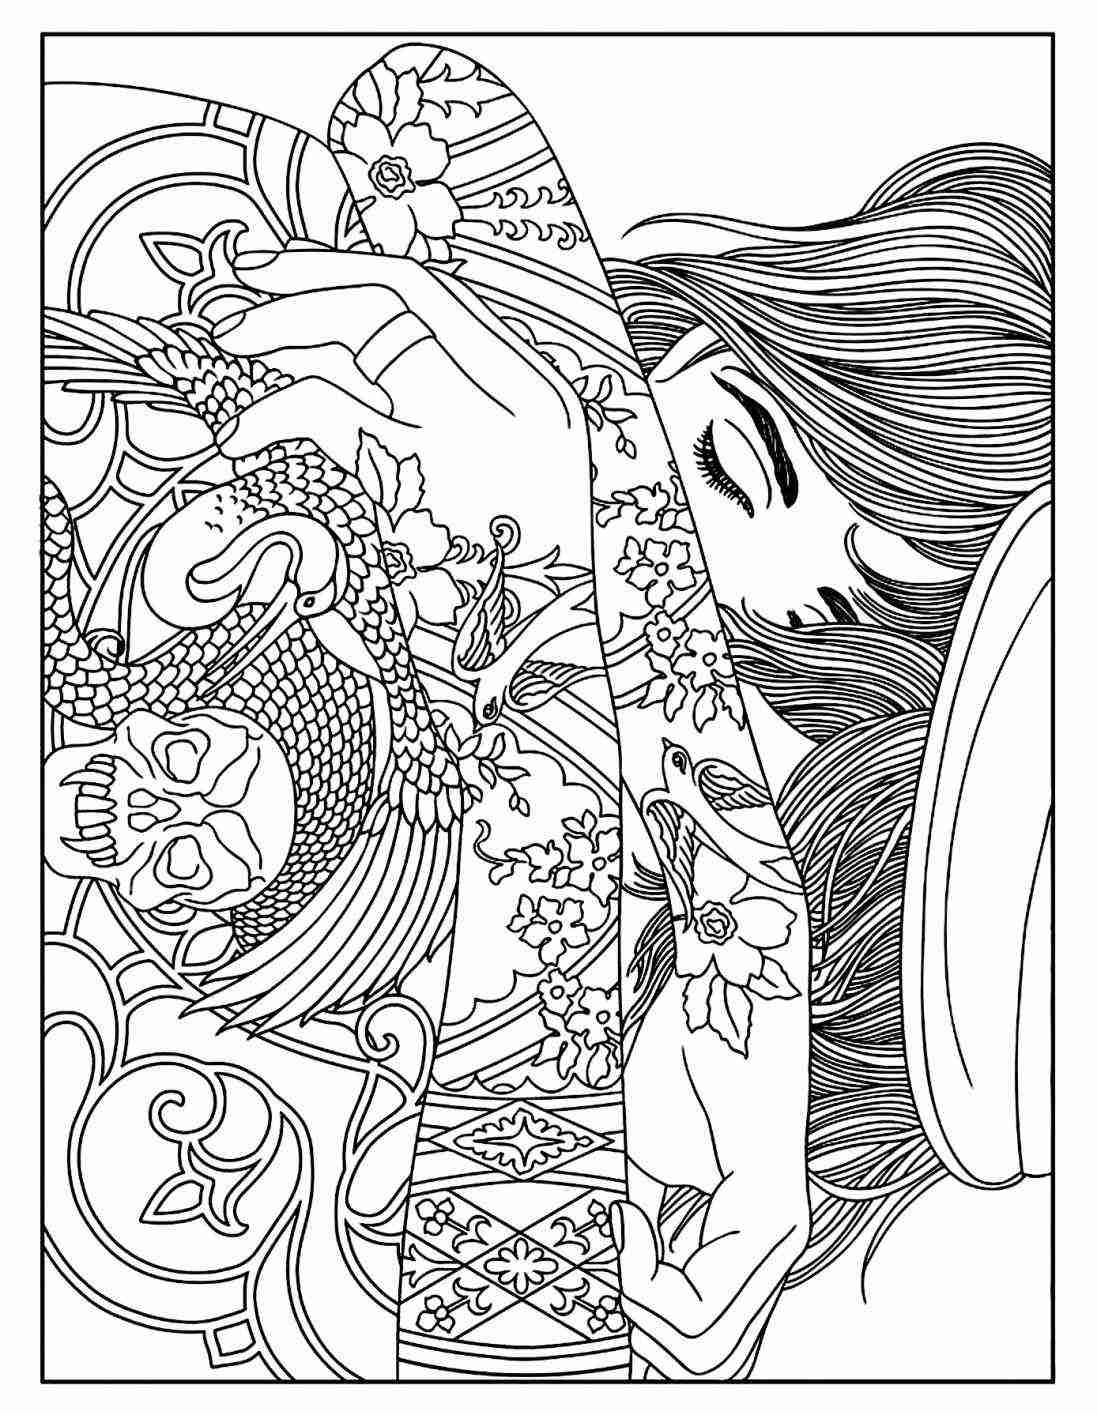 1097x1415 Detailed Landscape Coloring Pages For Adults Colouring Snazzy Draw